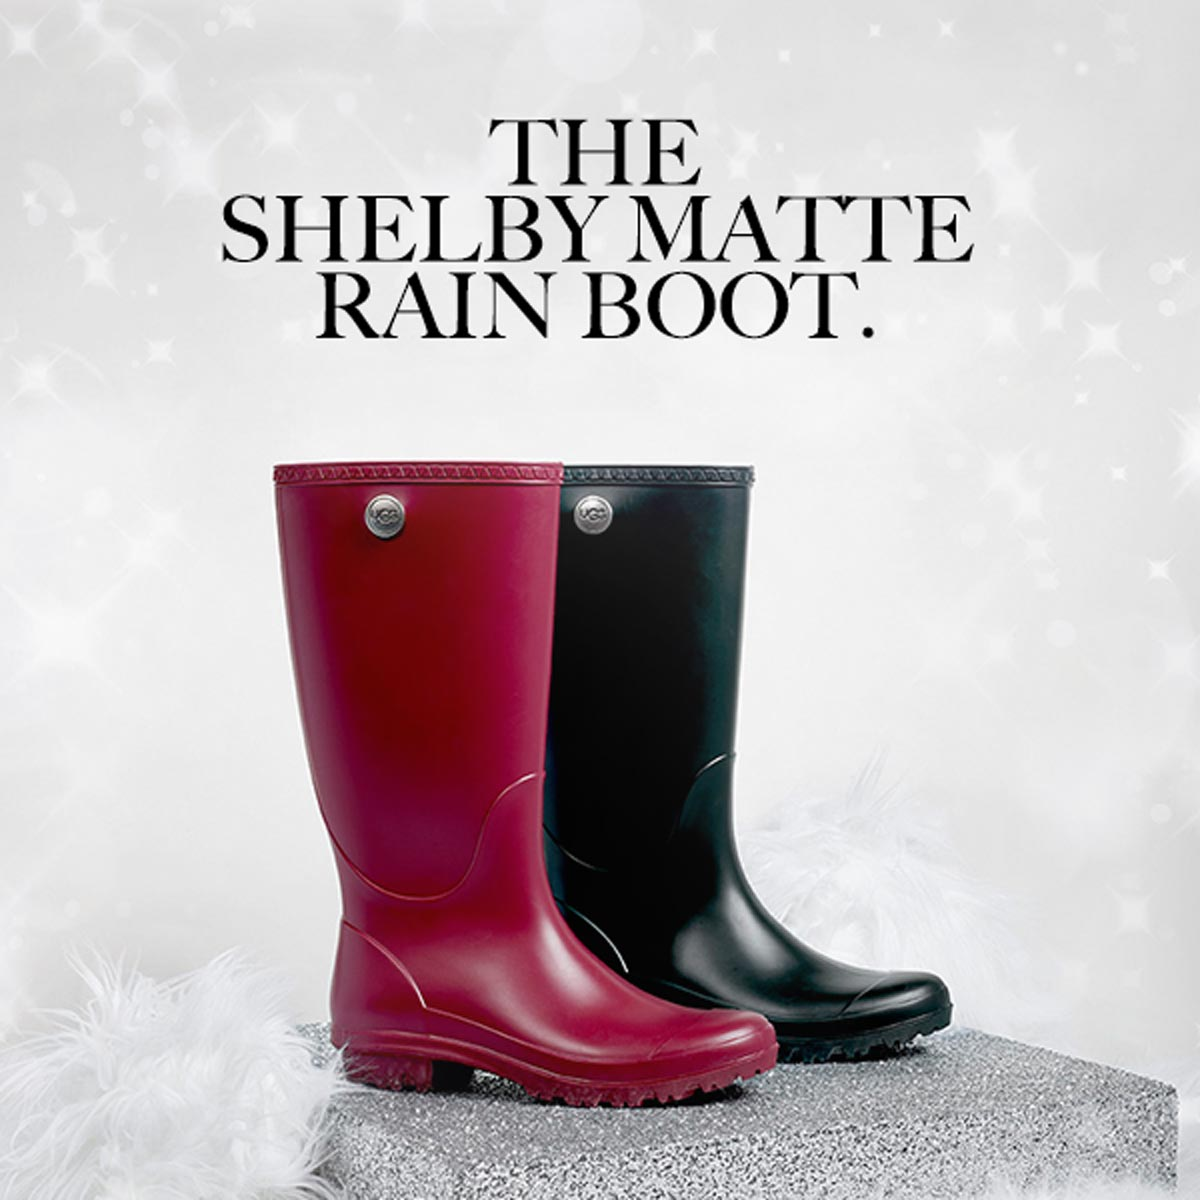 054a0789937 UGG Australia: Waterproof boots + free gift   Milled